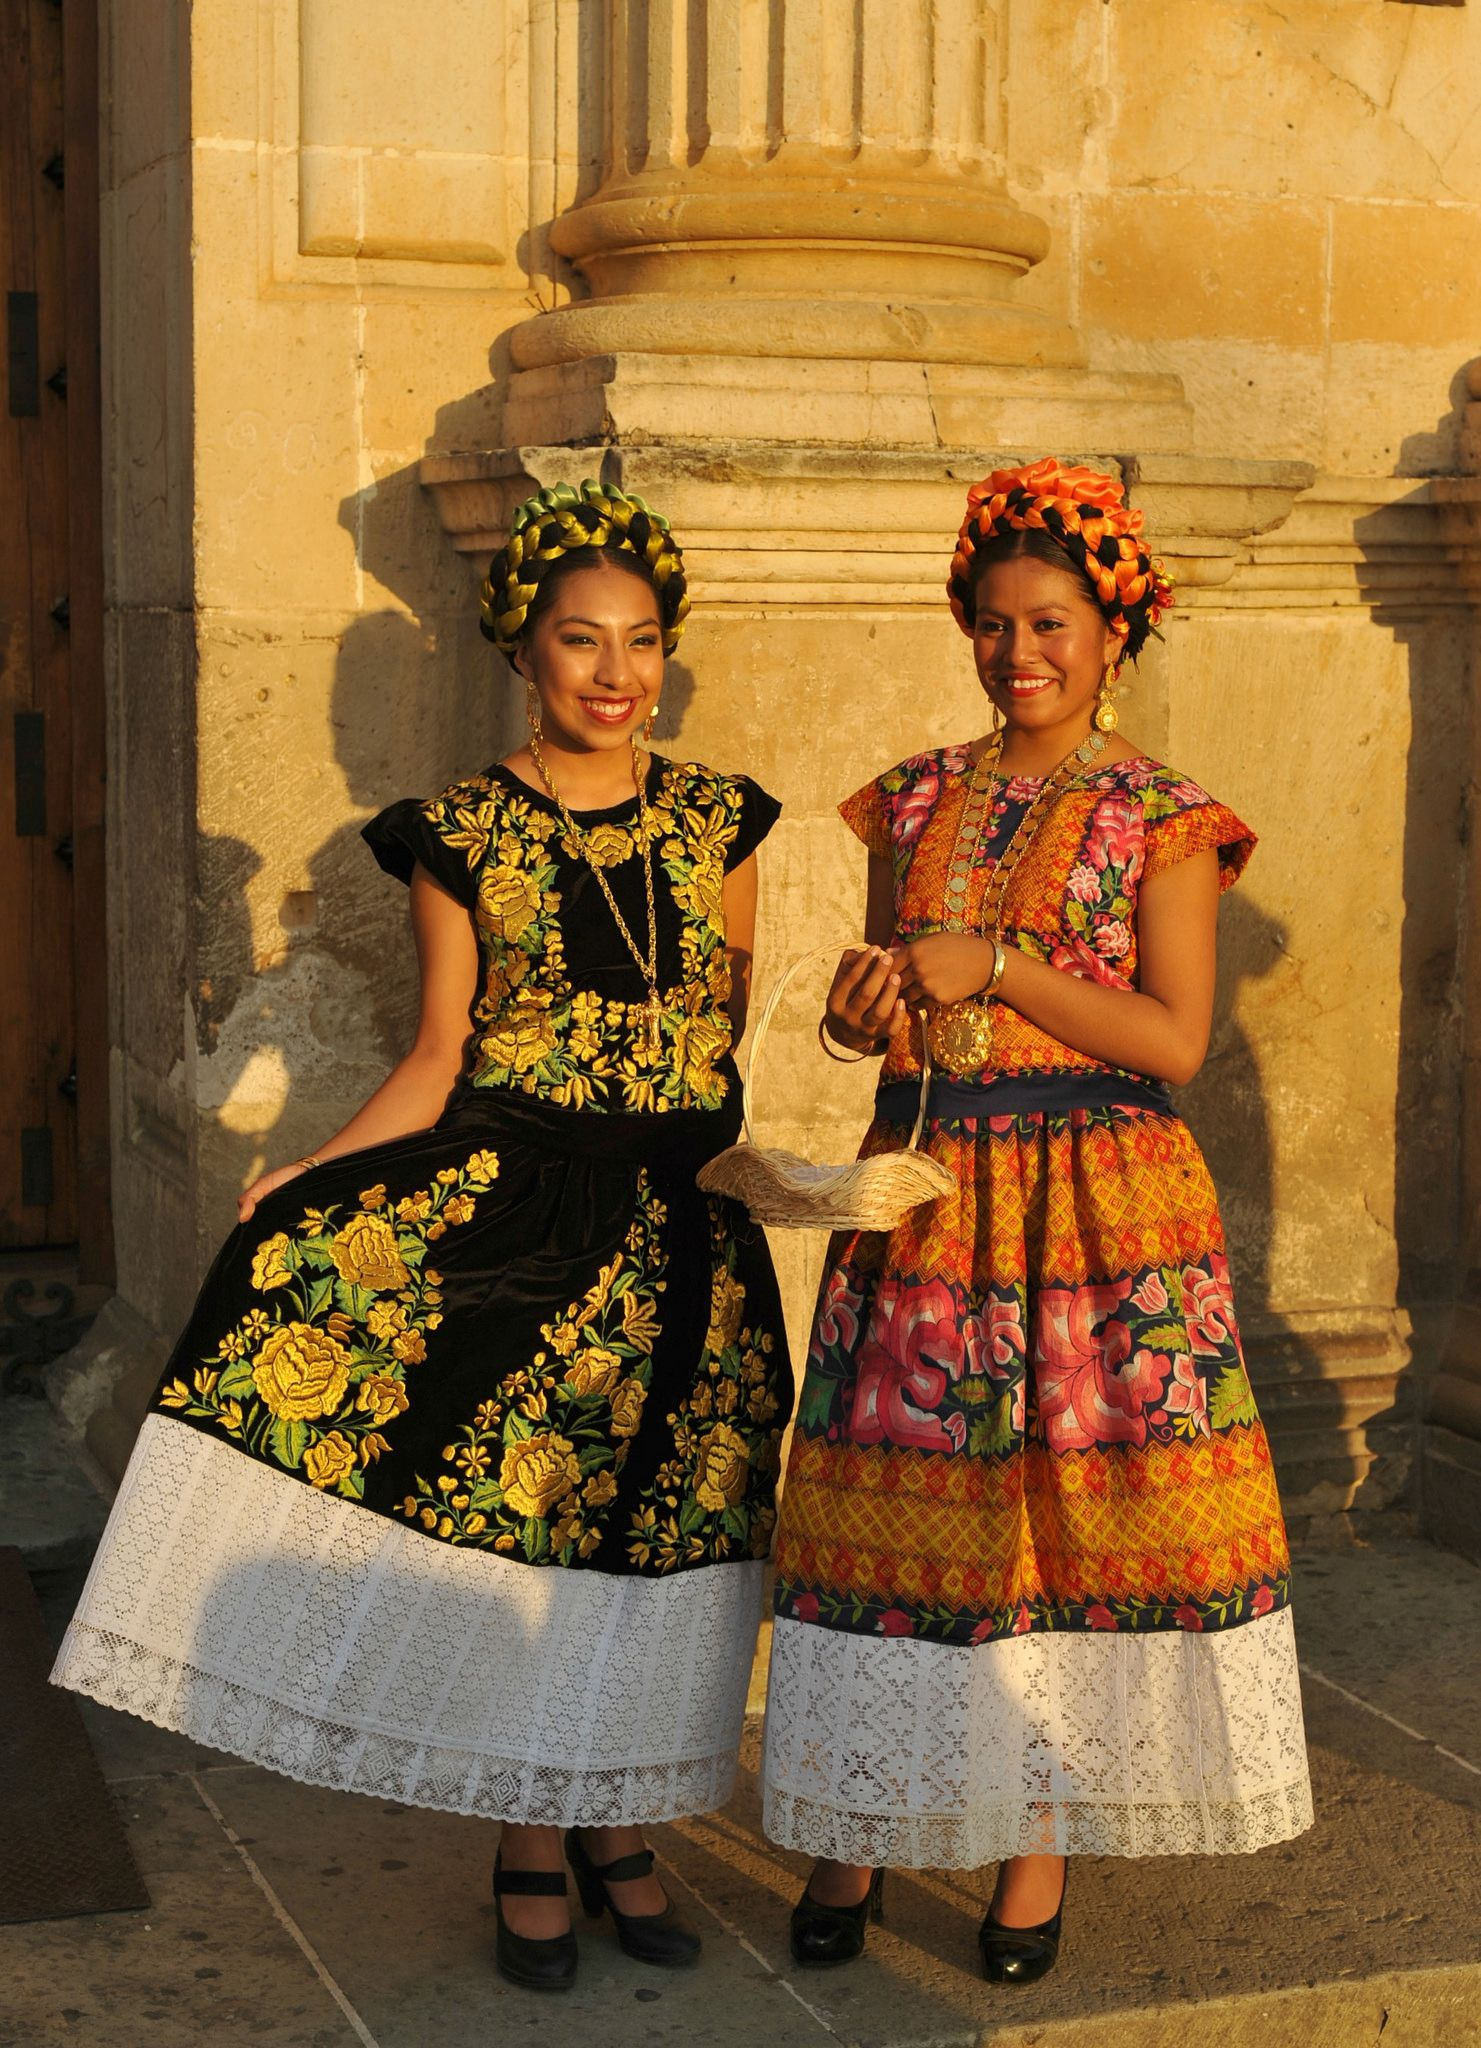 sunset women oaxaca mexico  traditional mexican dress